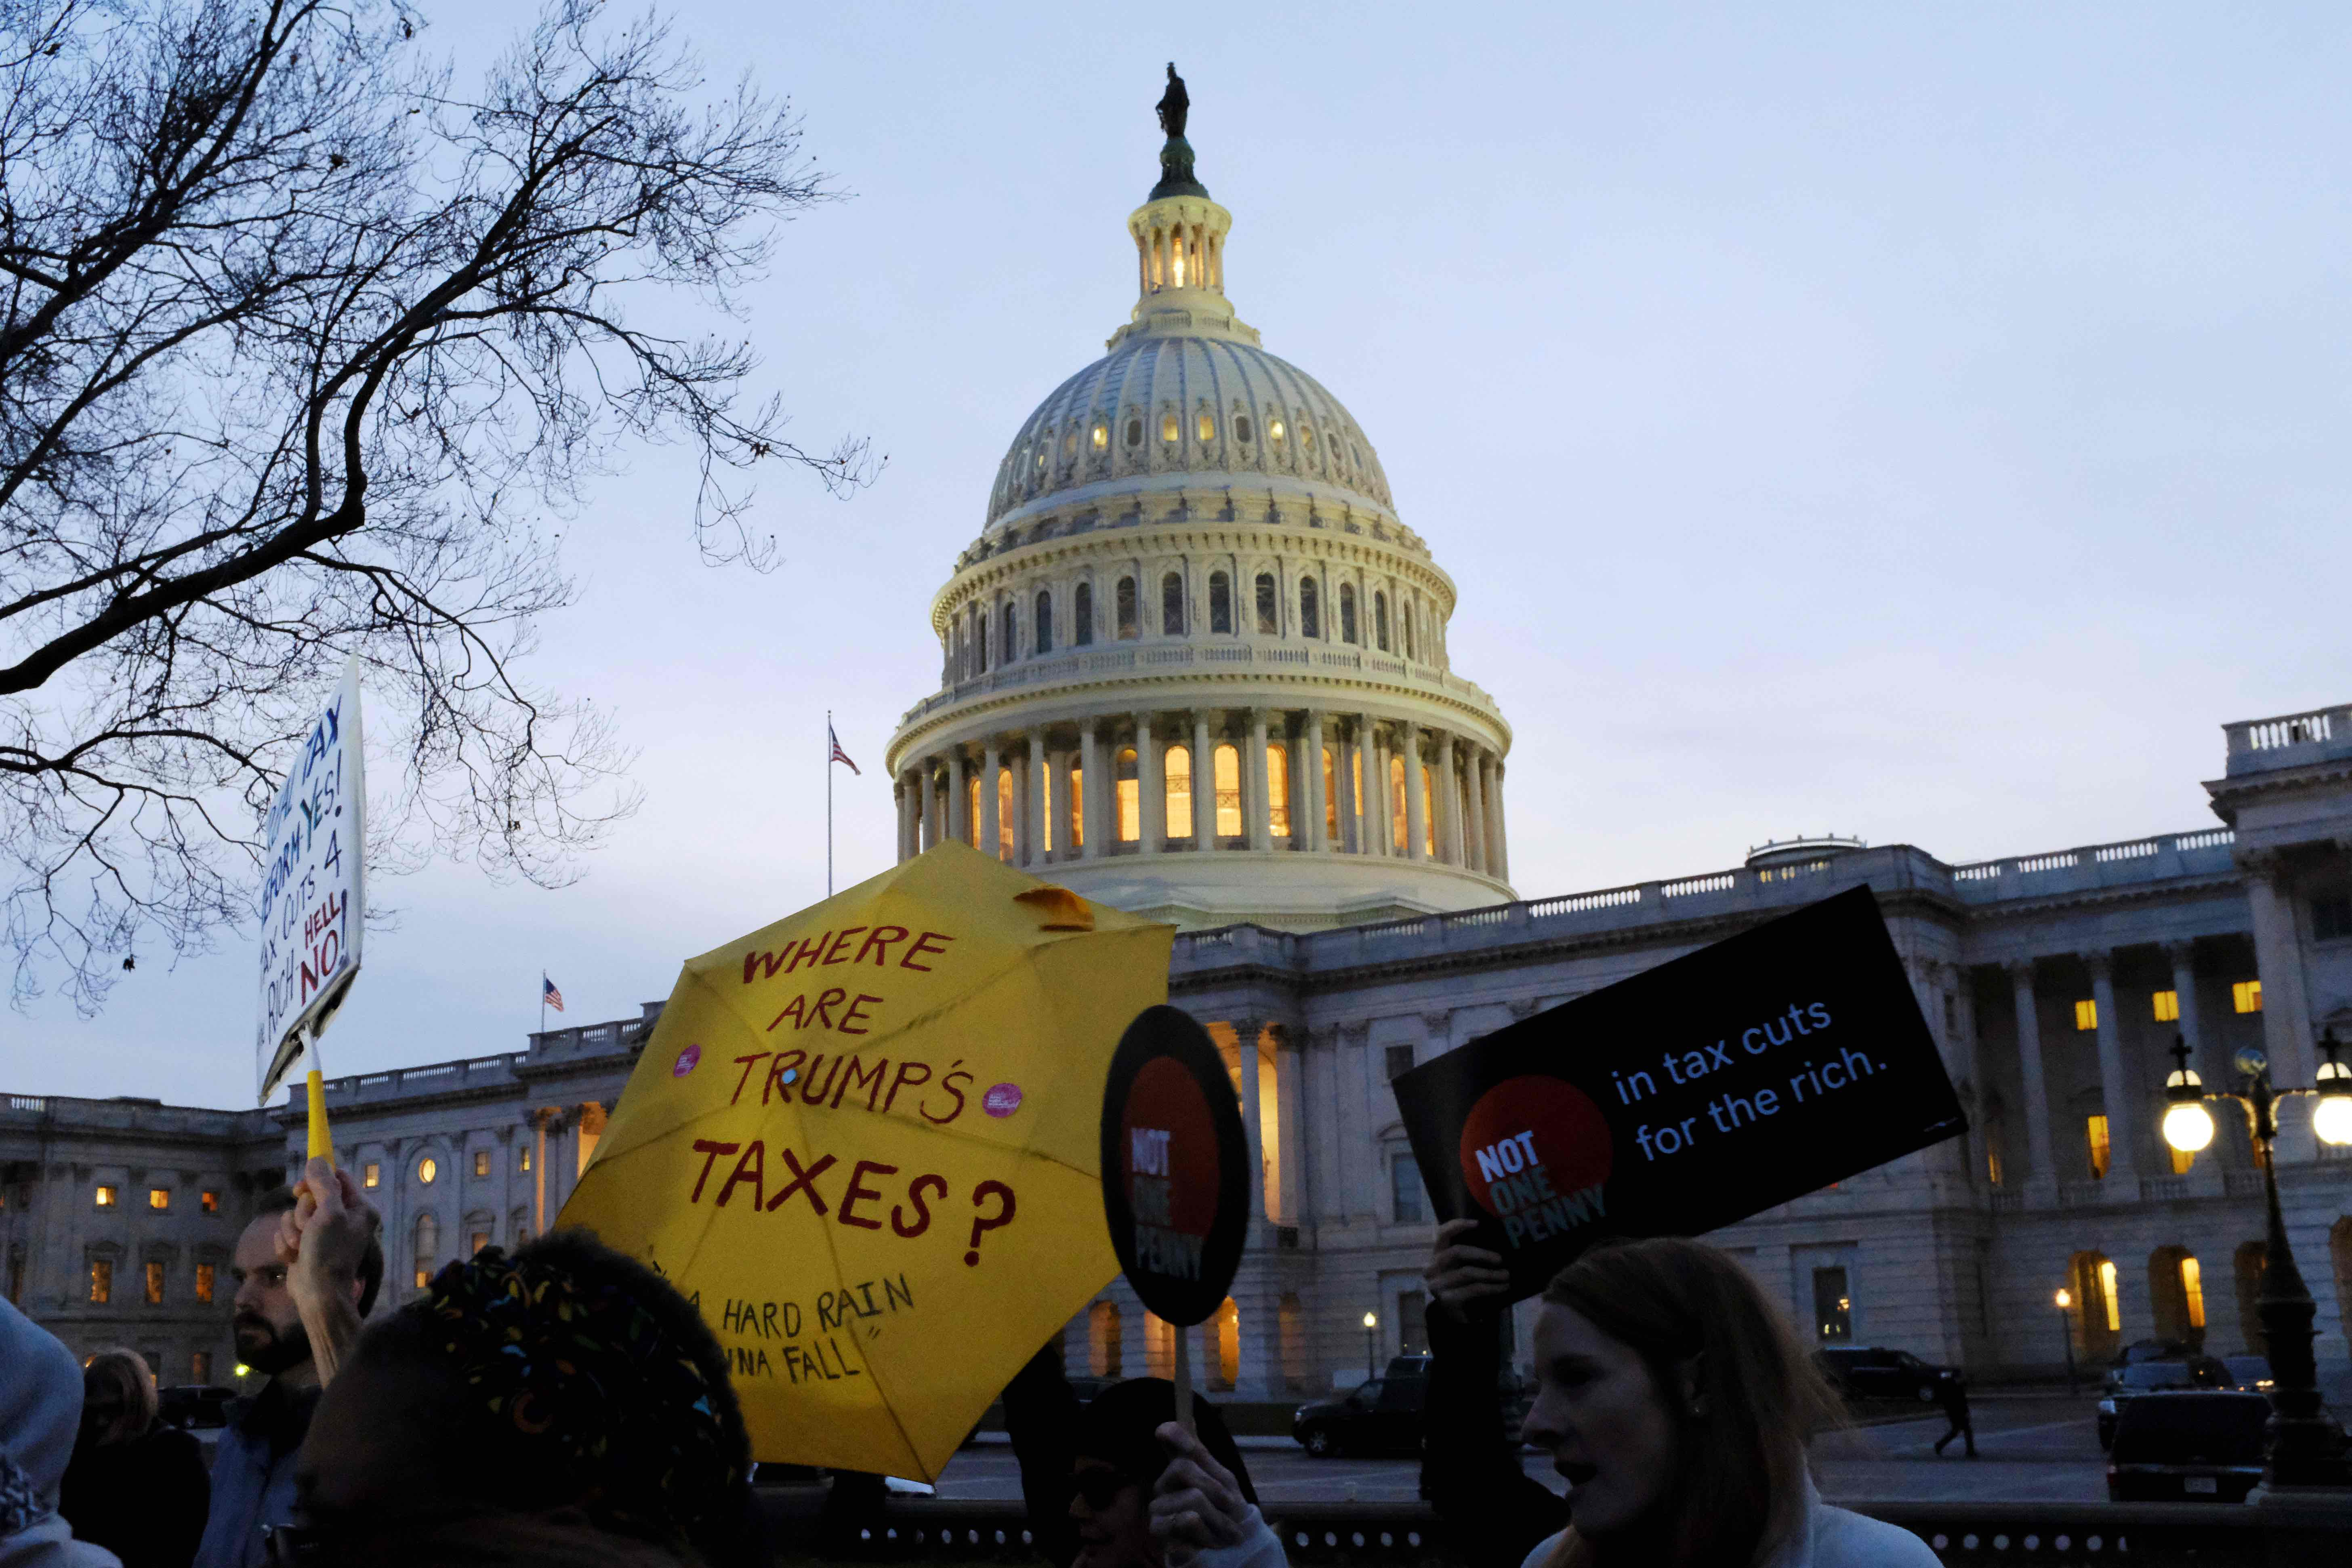 Demonstrators gather outside the US Capitol to protest the Republican tax plan as it works through the Senate in Washington November 30, 2017. Credit: Reuters/James Lawler Duggan